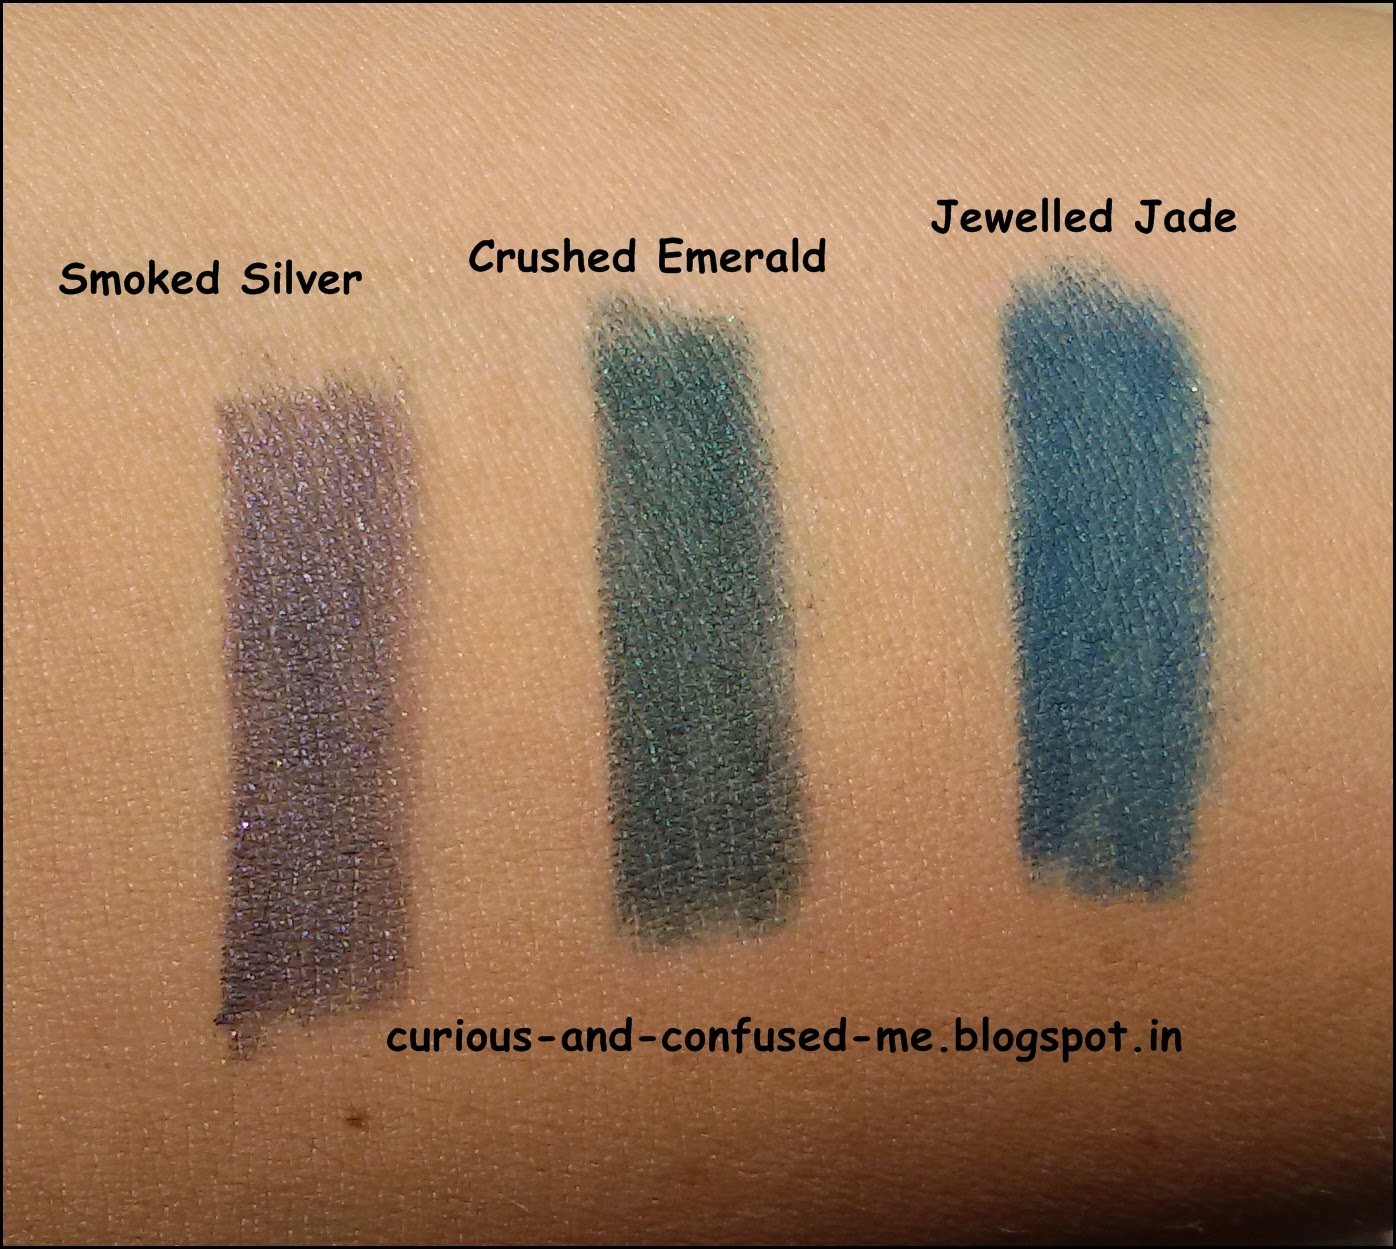 3 new shades of  Maybelline Colossal Kohl, Smoked Silver review, Crushed Emerald review, Jewelled Jade review, Maybelline Colossal Kohl swatches, Colored Maybelline Colossal Kohl review, Maybelline Colossal Kohl Smoked Silver Crushed Emerald Jewelled Jade swatch, Colored eyeliner in India, Kajals under 300 India, Maybelline Kajal